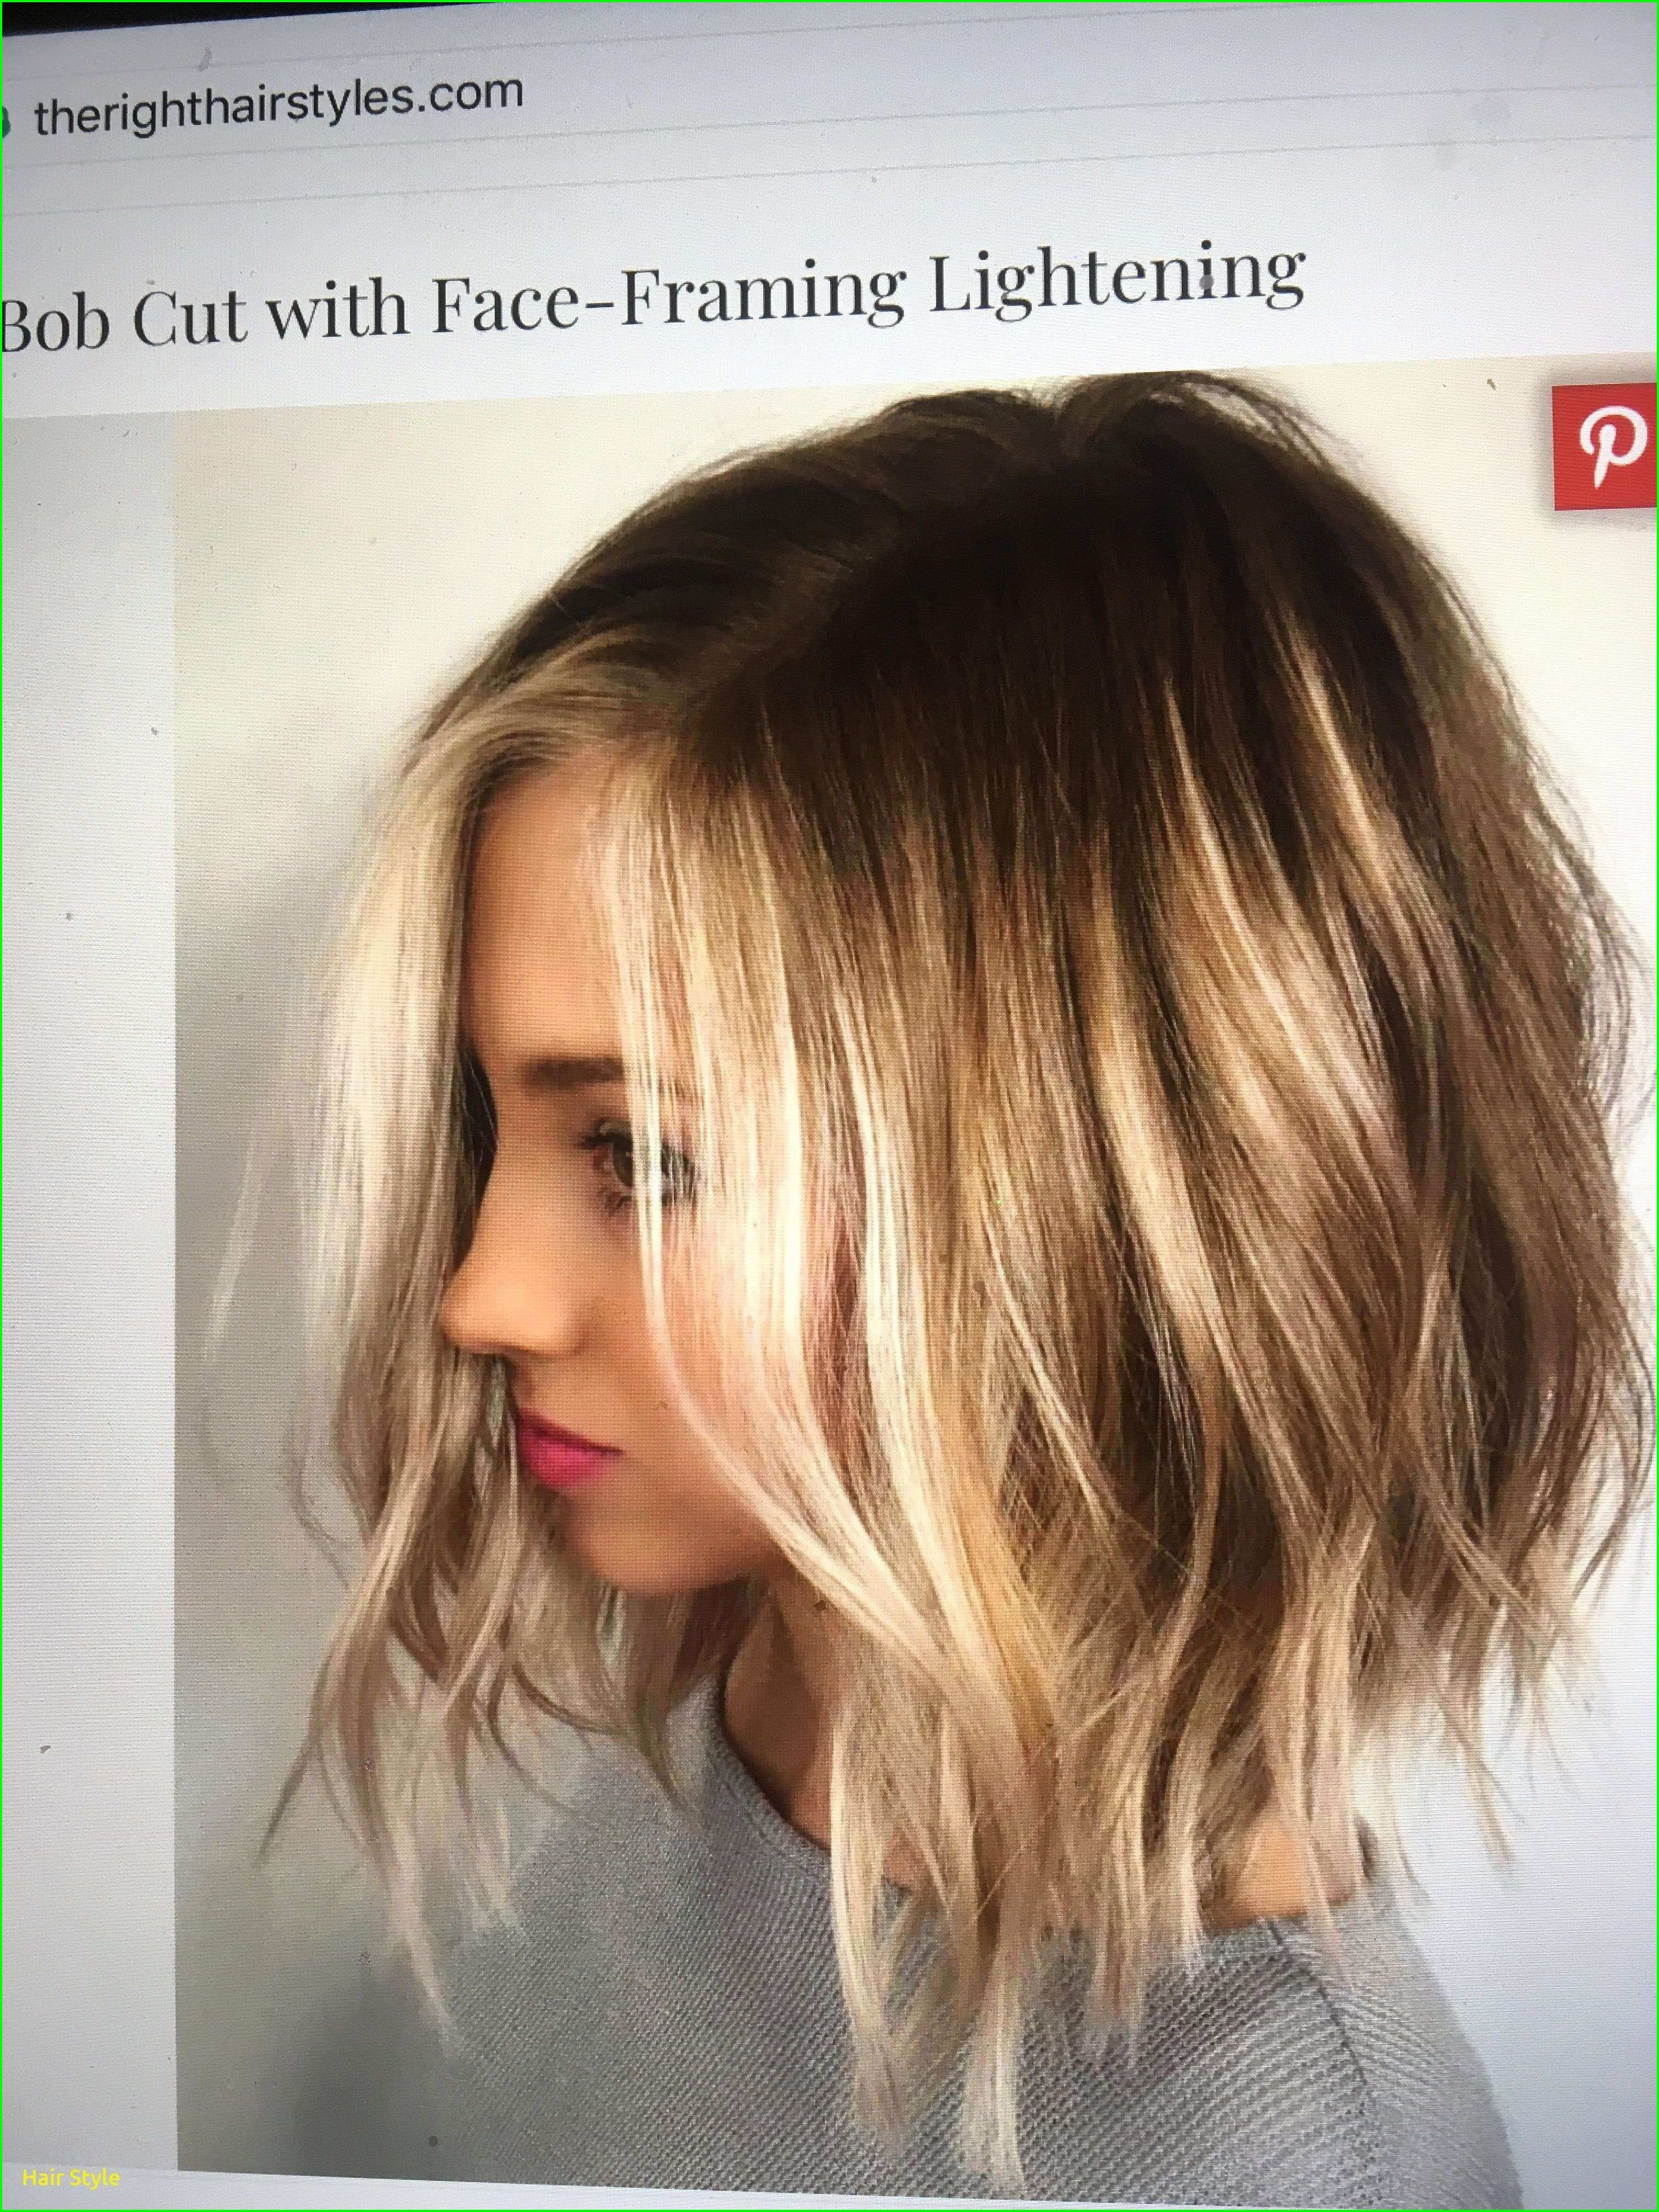 Pin On Hairstyle Ideas 2019